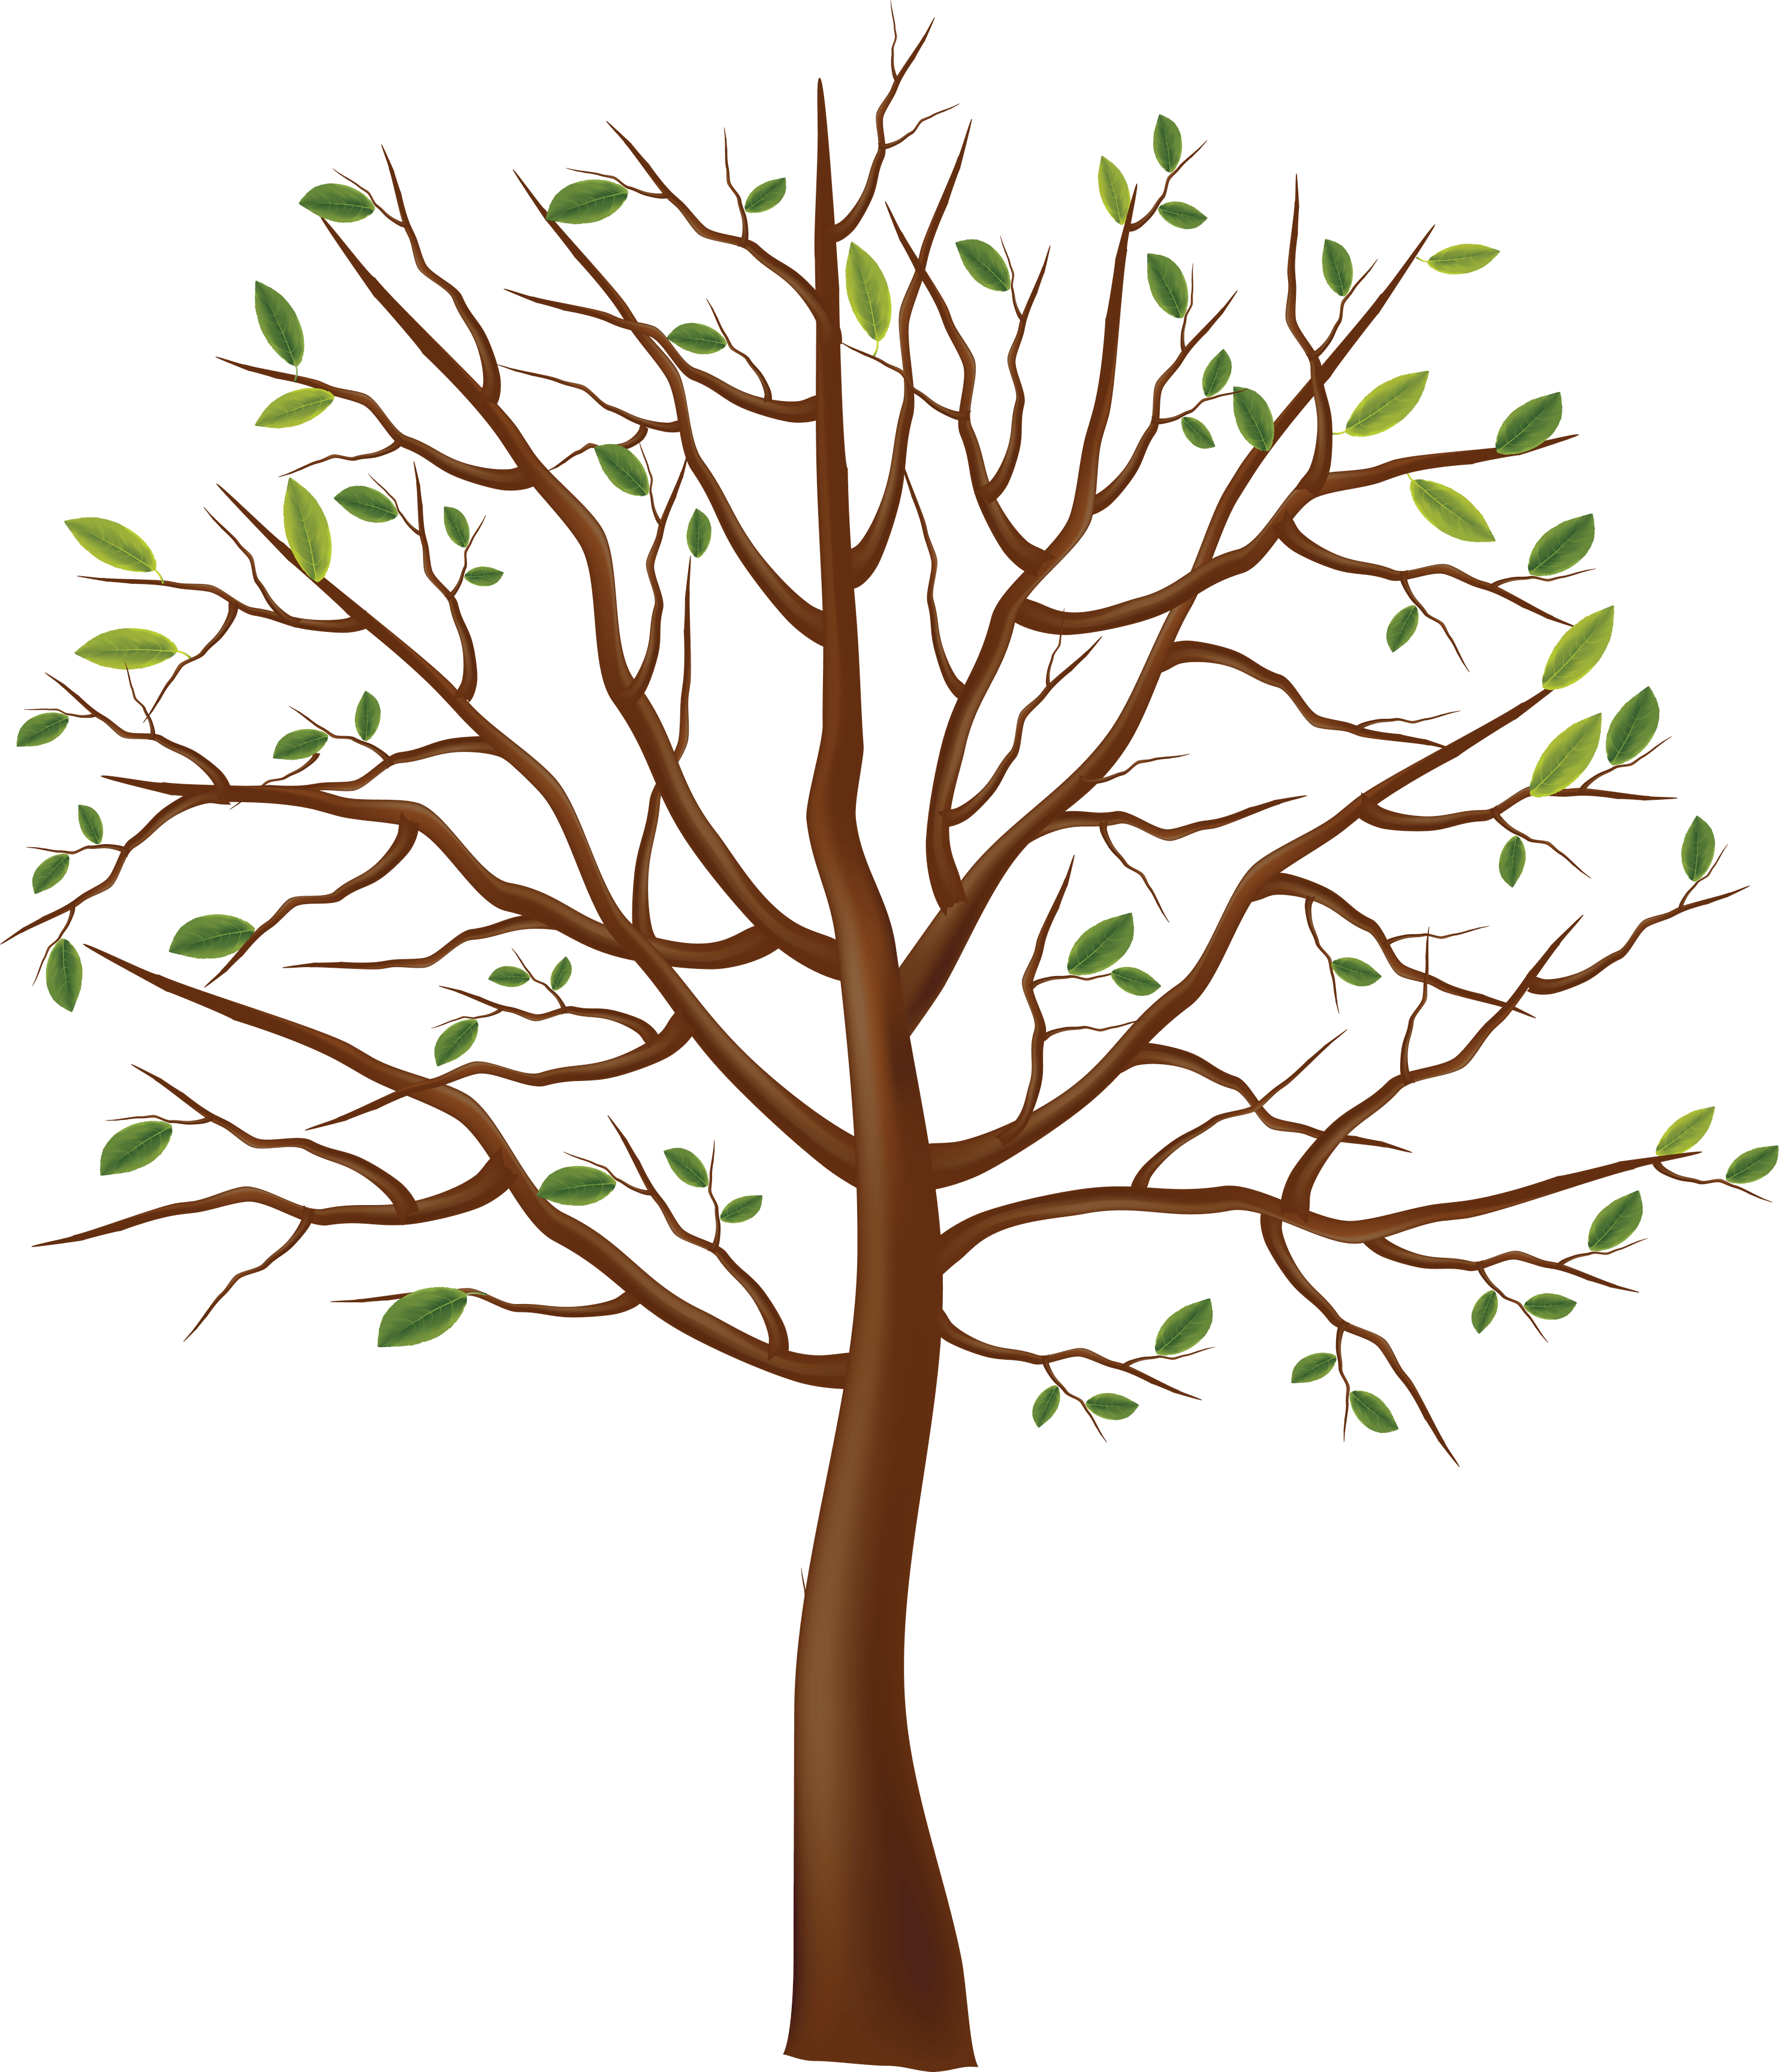 download tree png image hq png image freepngimg chameleon clip art png chameleon clip art free